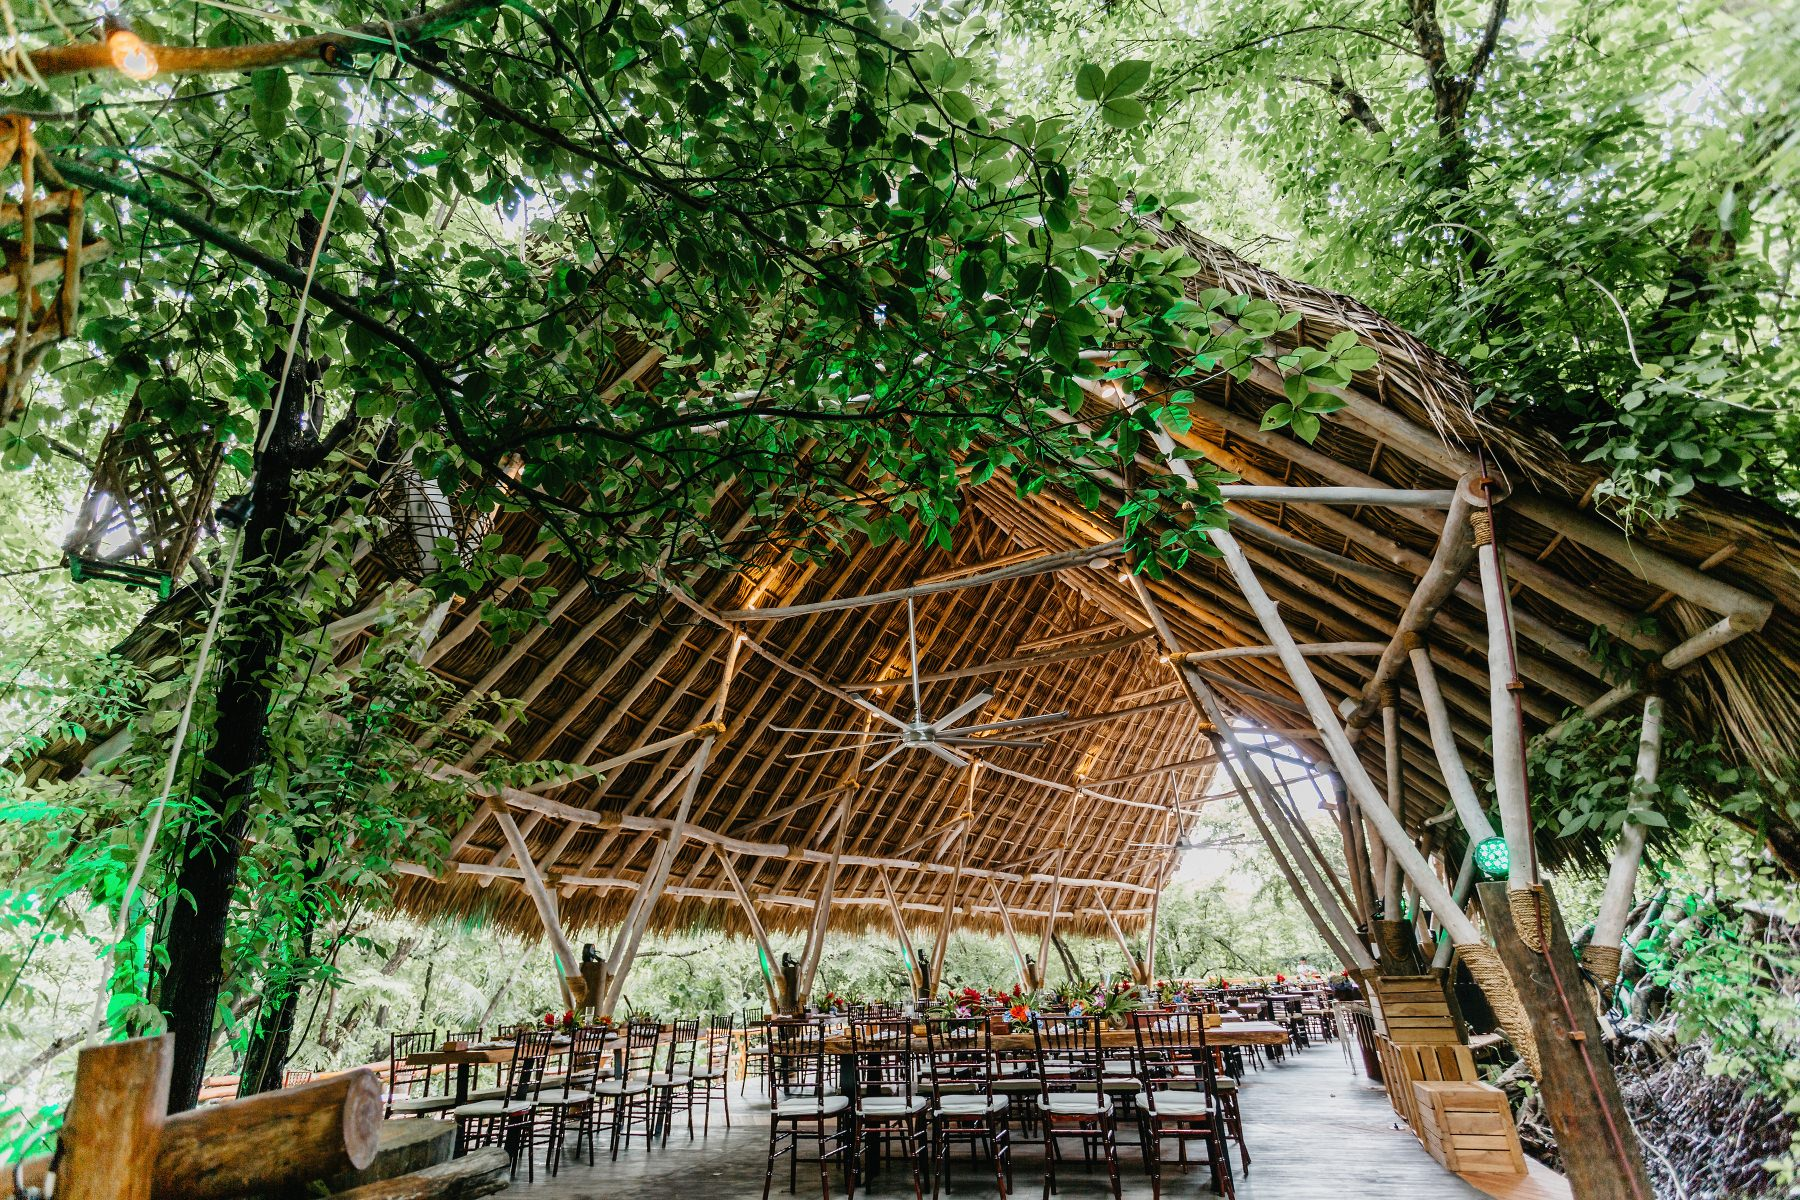 Tropical wedding Venue ideas